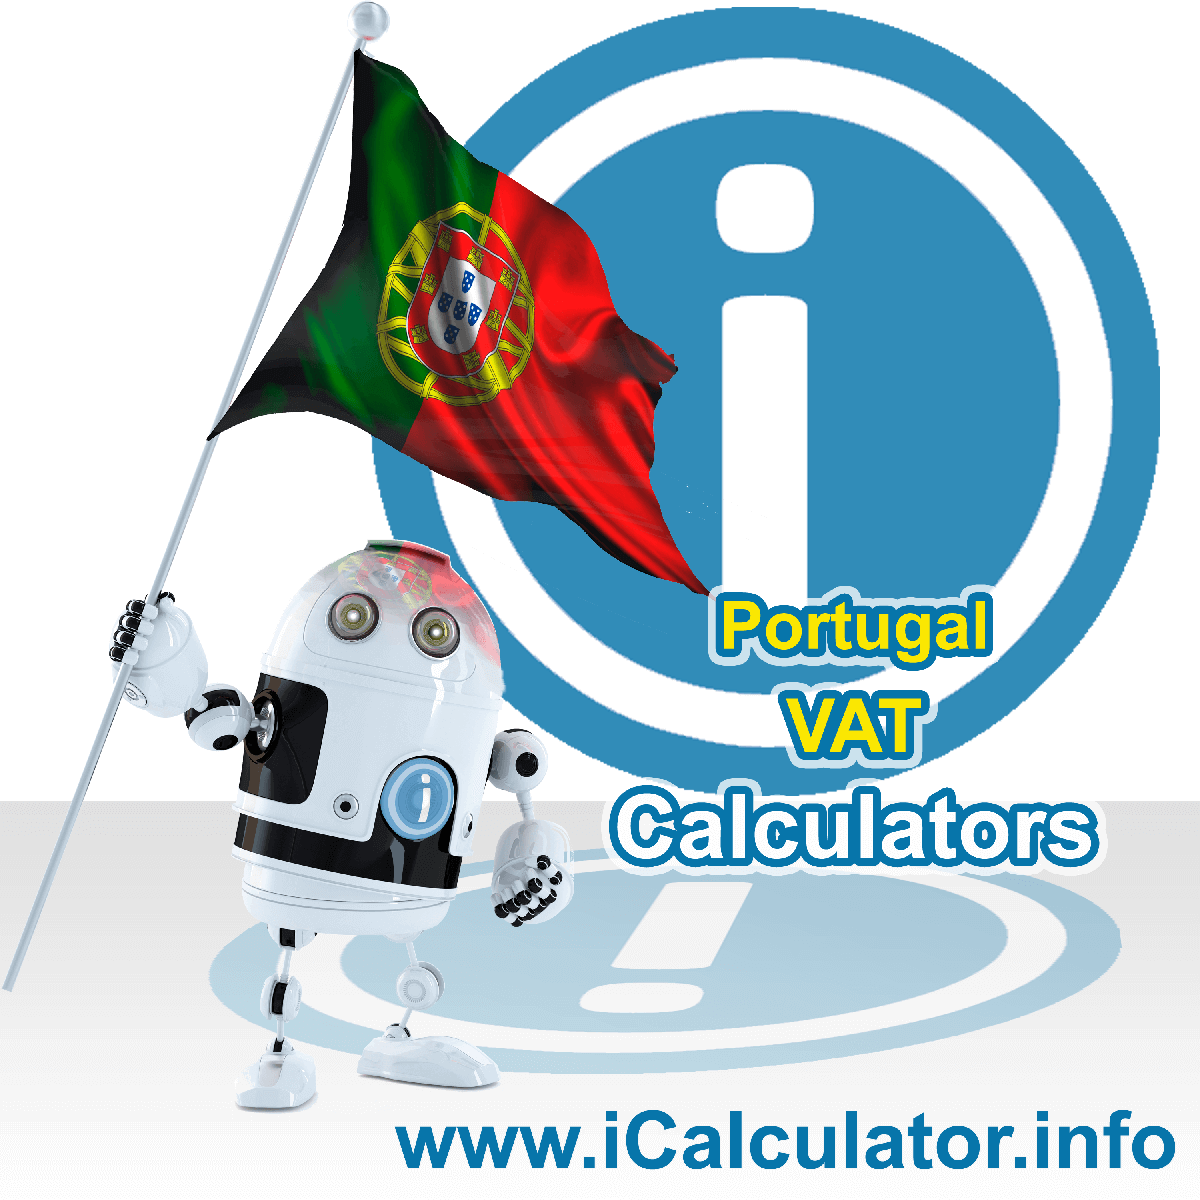 Portugal VAT Calculator. This image shows the Portugal flag and information relating to the VAT formula used for calculating Value Added Tax in Portugal using the Portugal VAT Calculator in 2021